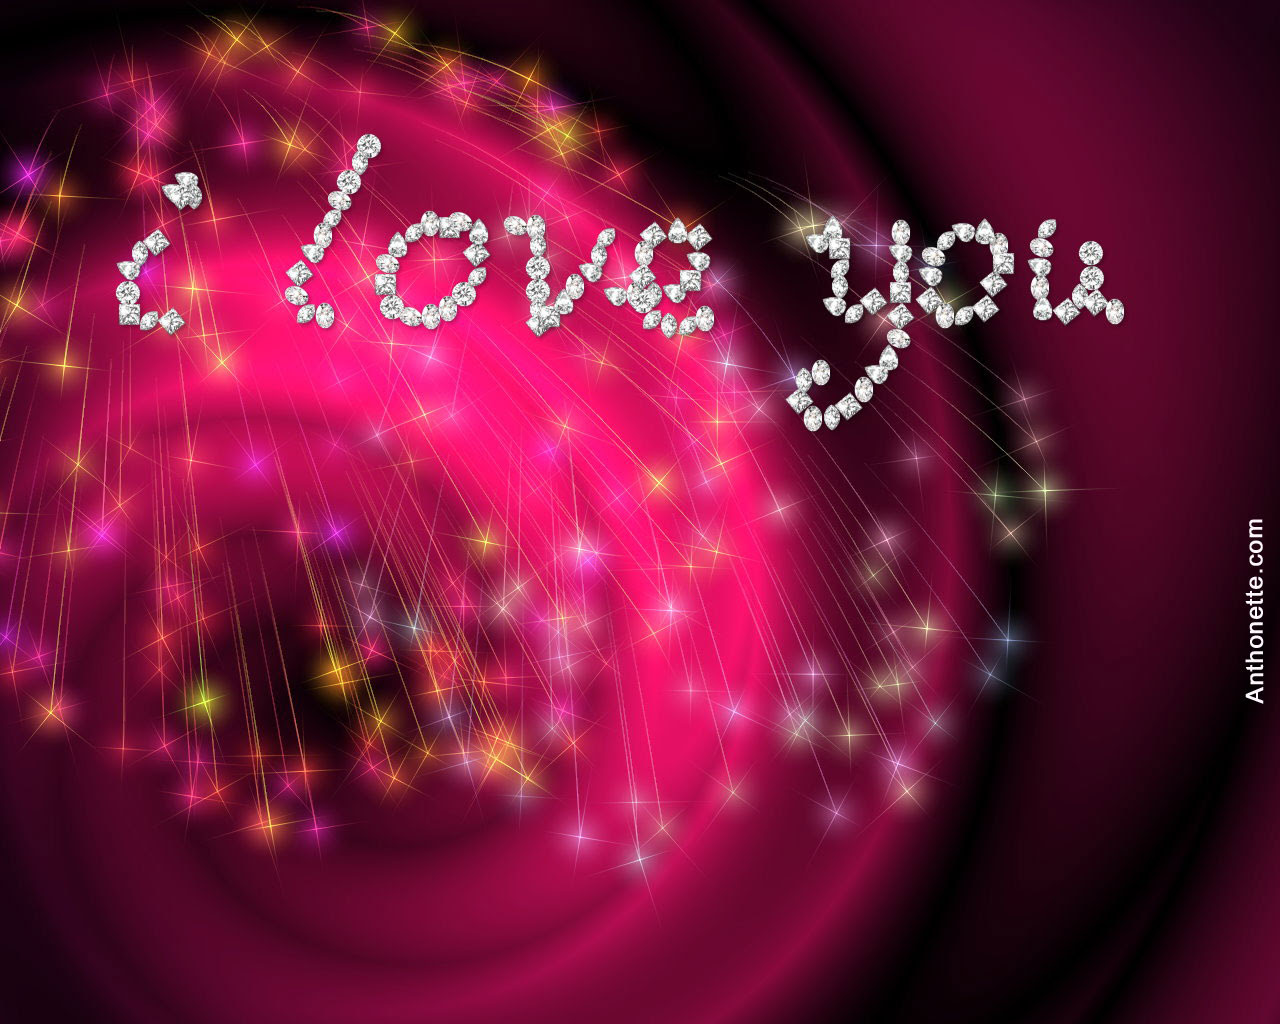 Free Animated Love Wallpaper For Mobile Phone Download Free Clip -